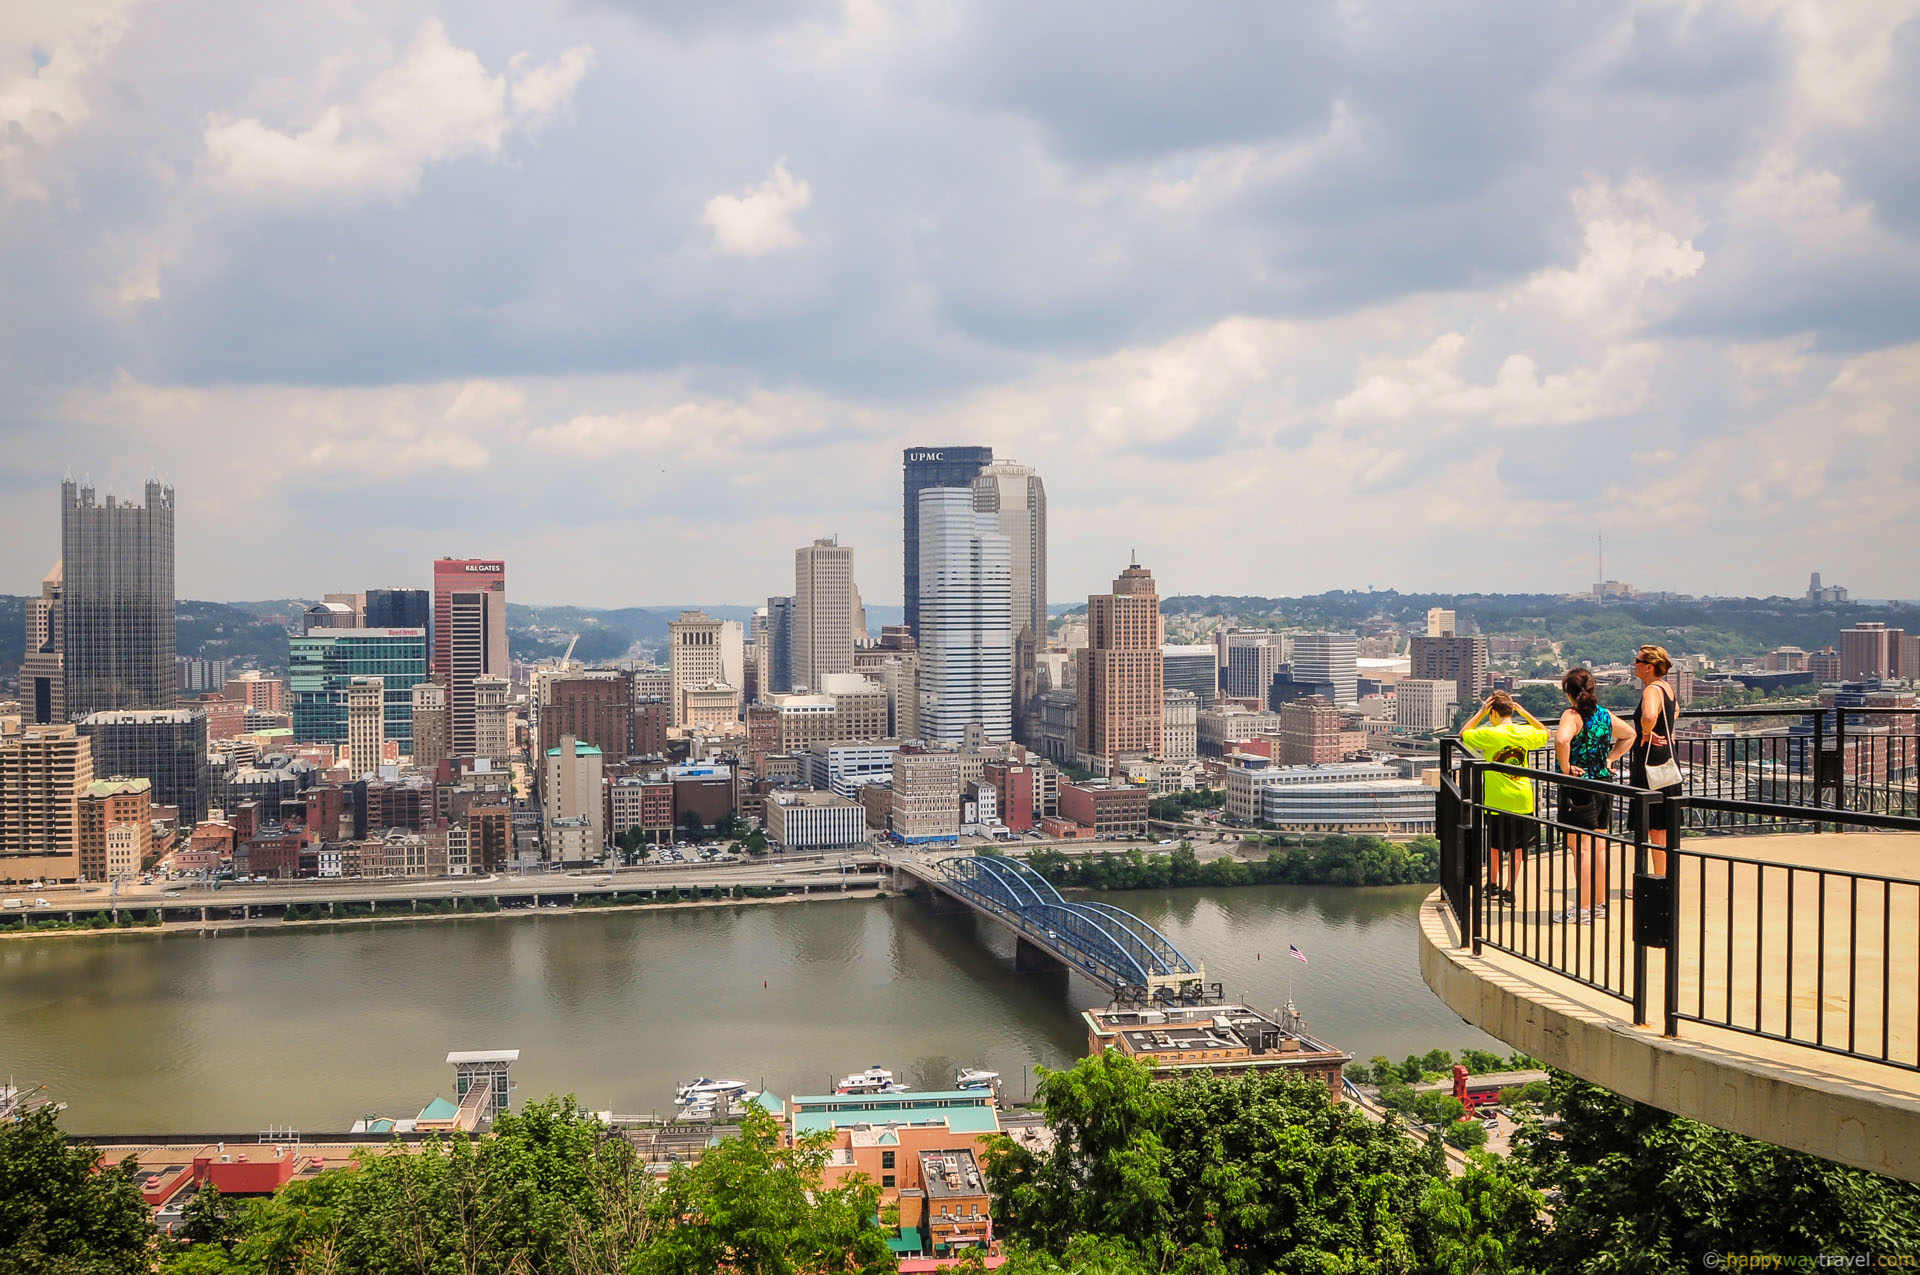 Estimated per capita income in 2016 30244 it was 18816 in 2000 Pittsburgh city income earnings and wages data Estimated median house or condo value in 2016